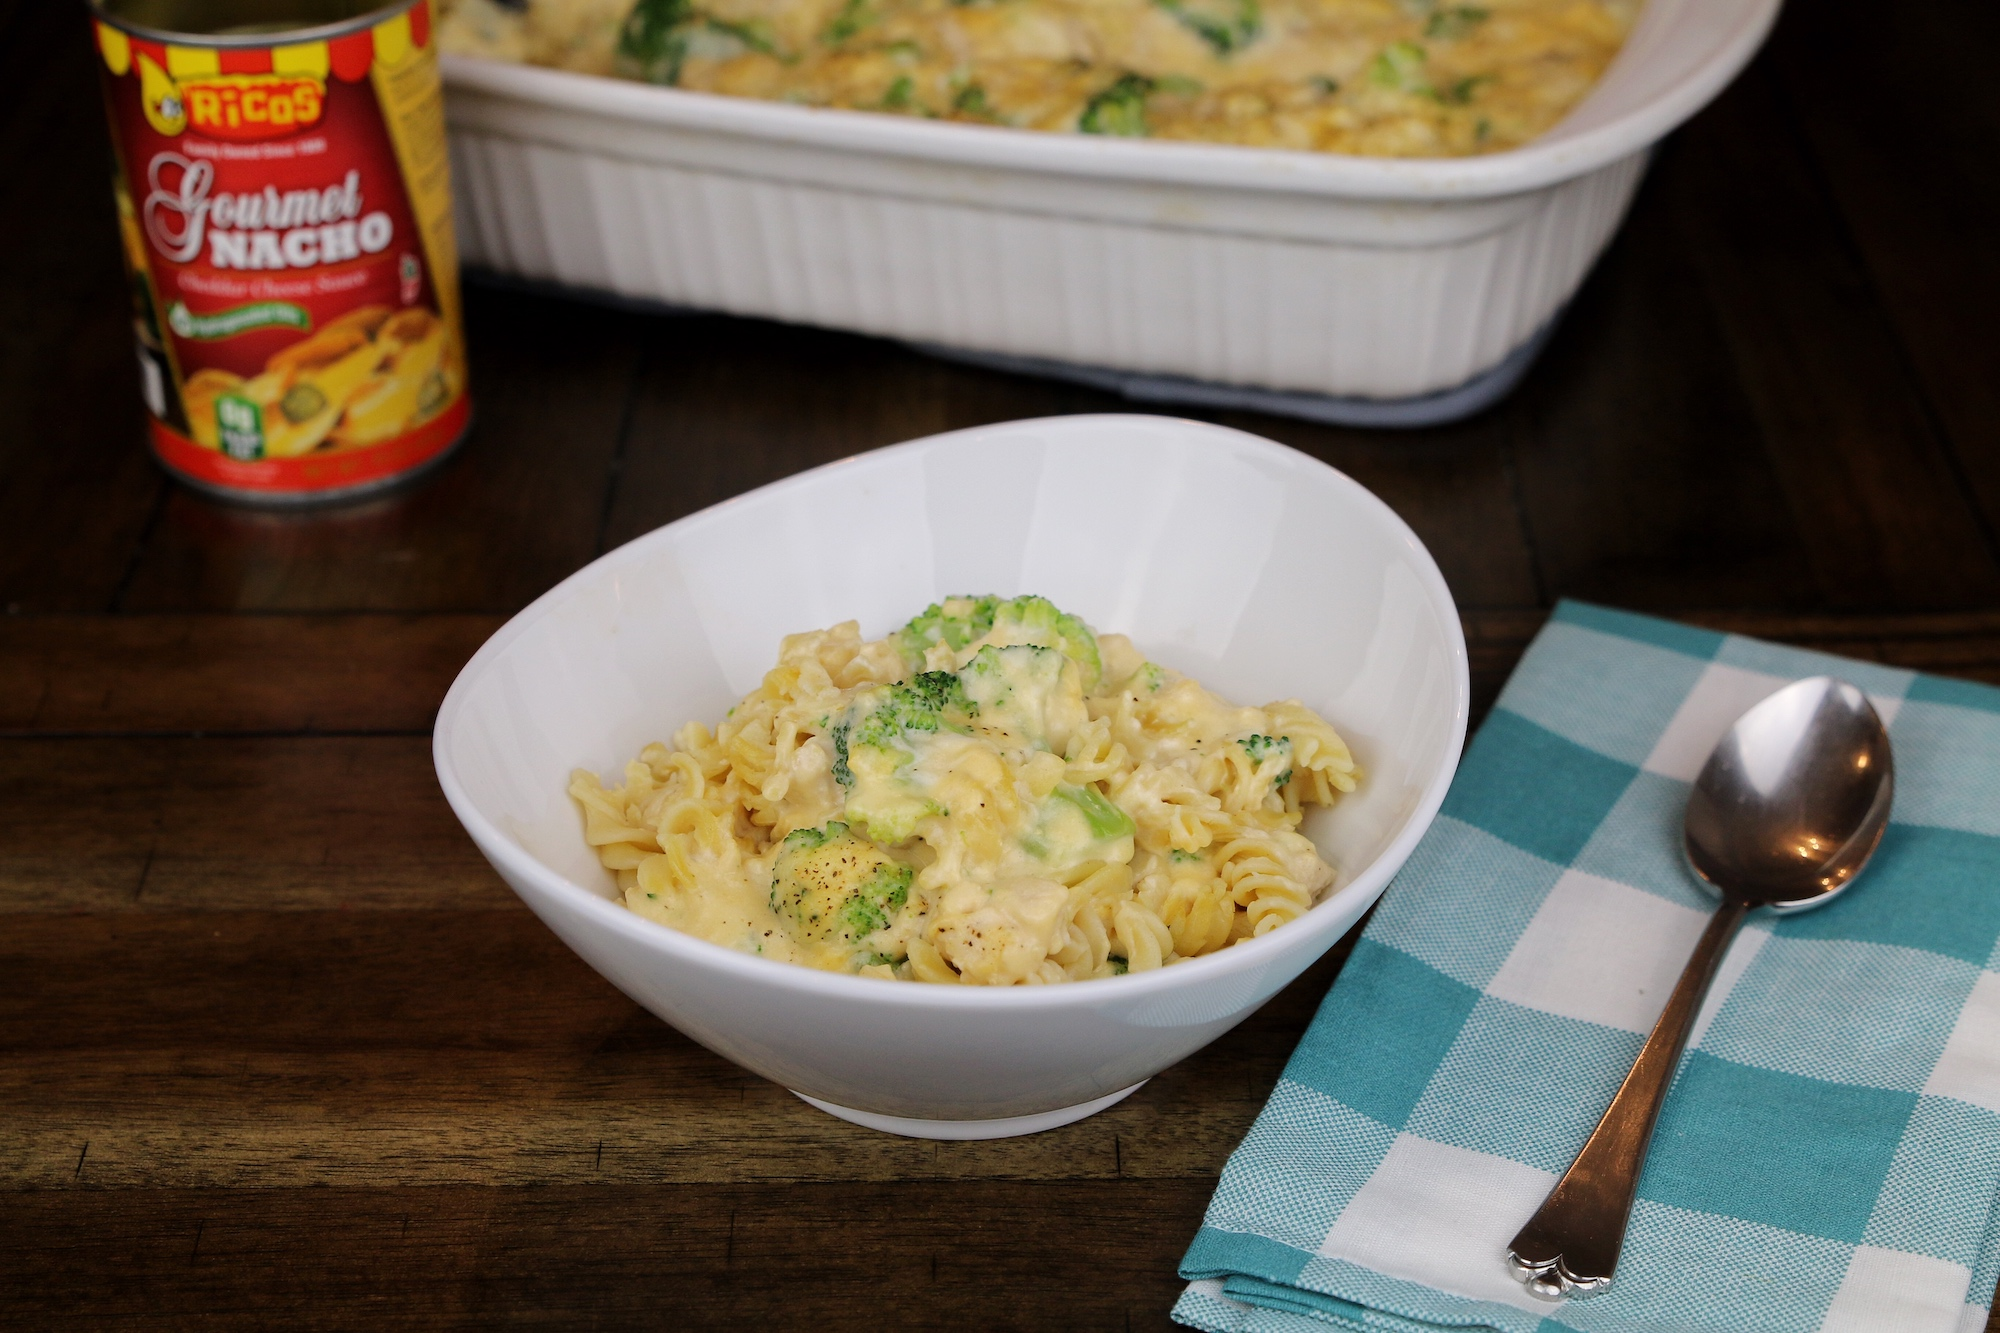 serve homemade macaroni and cheese with chicken and broccoli